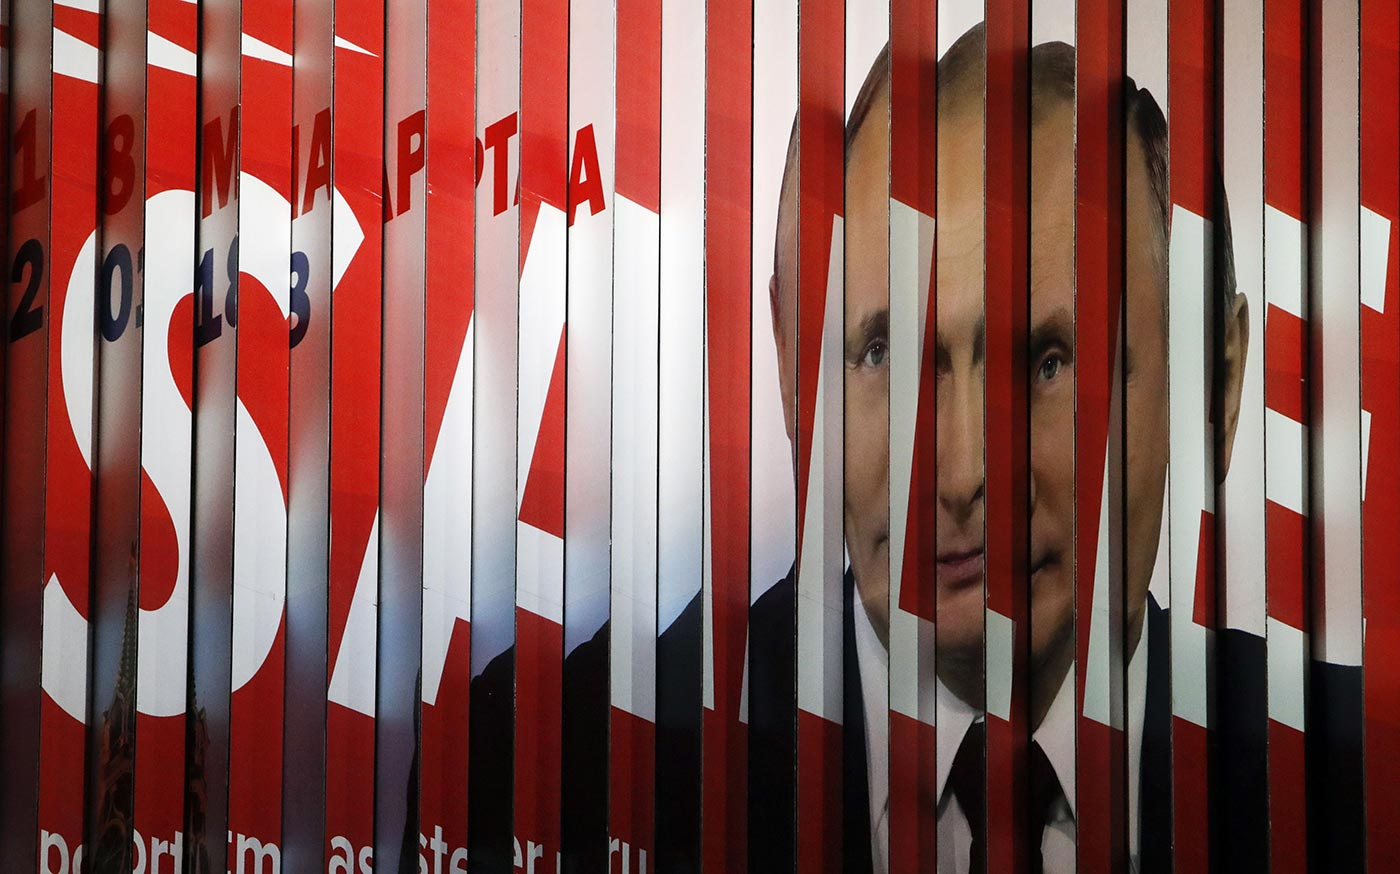 A multi-sided transformable board, which advertises the campaign of Vladimir Putin ahead of the upcoming presidential election,  on display in a street in Moscow, January 2018. Photo (c): REUTERS/Sergei Karpukhin